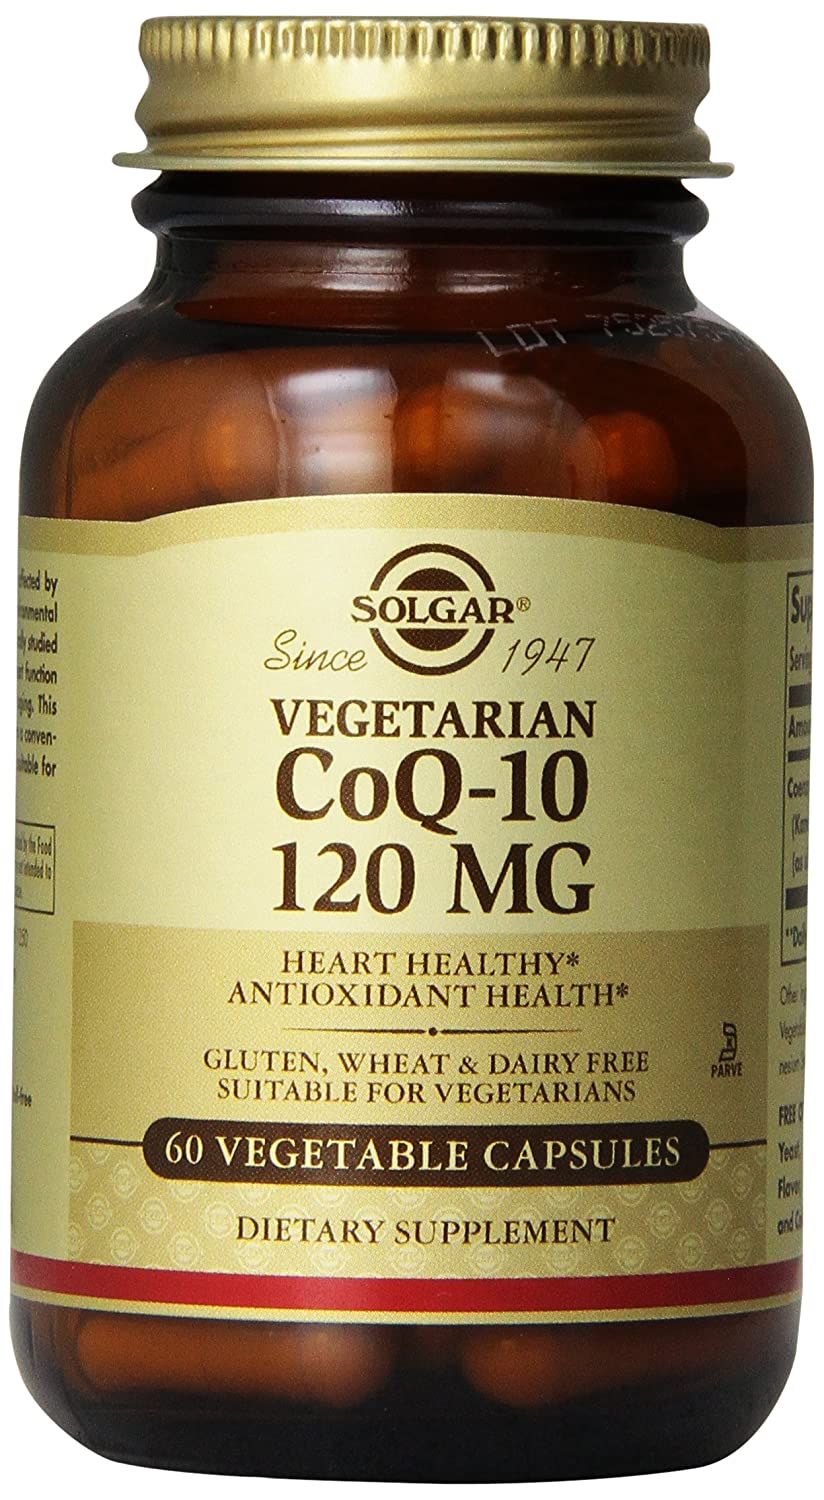 Solgar Vegetarian CoQ-10 Vegetable Capsules, 120 mg, 60 Count